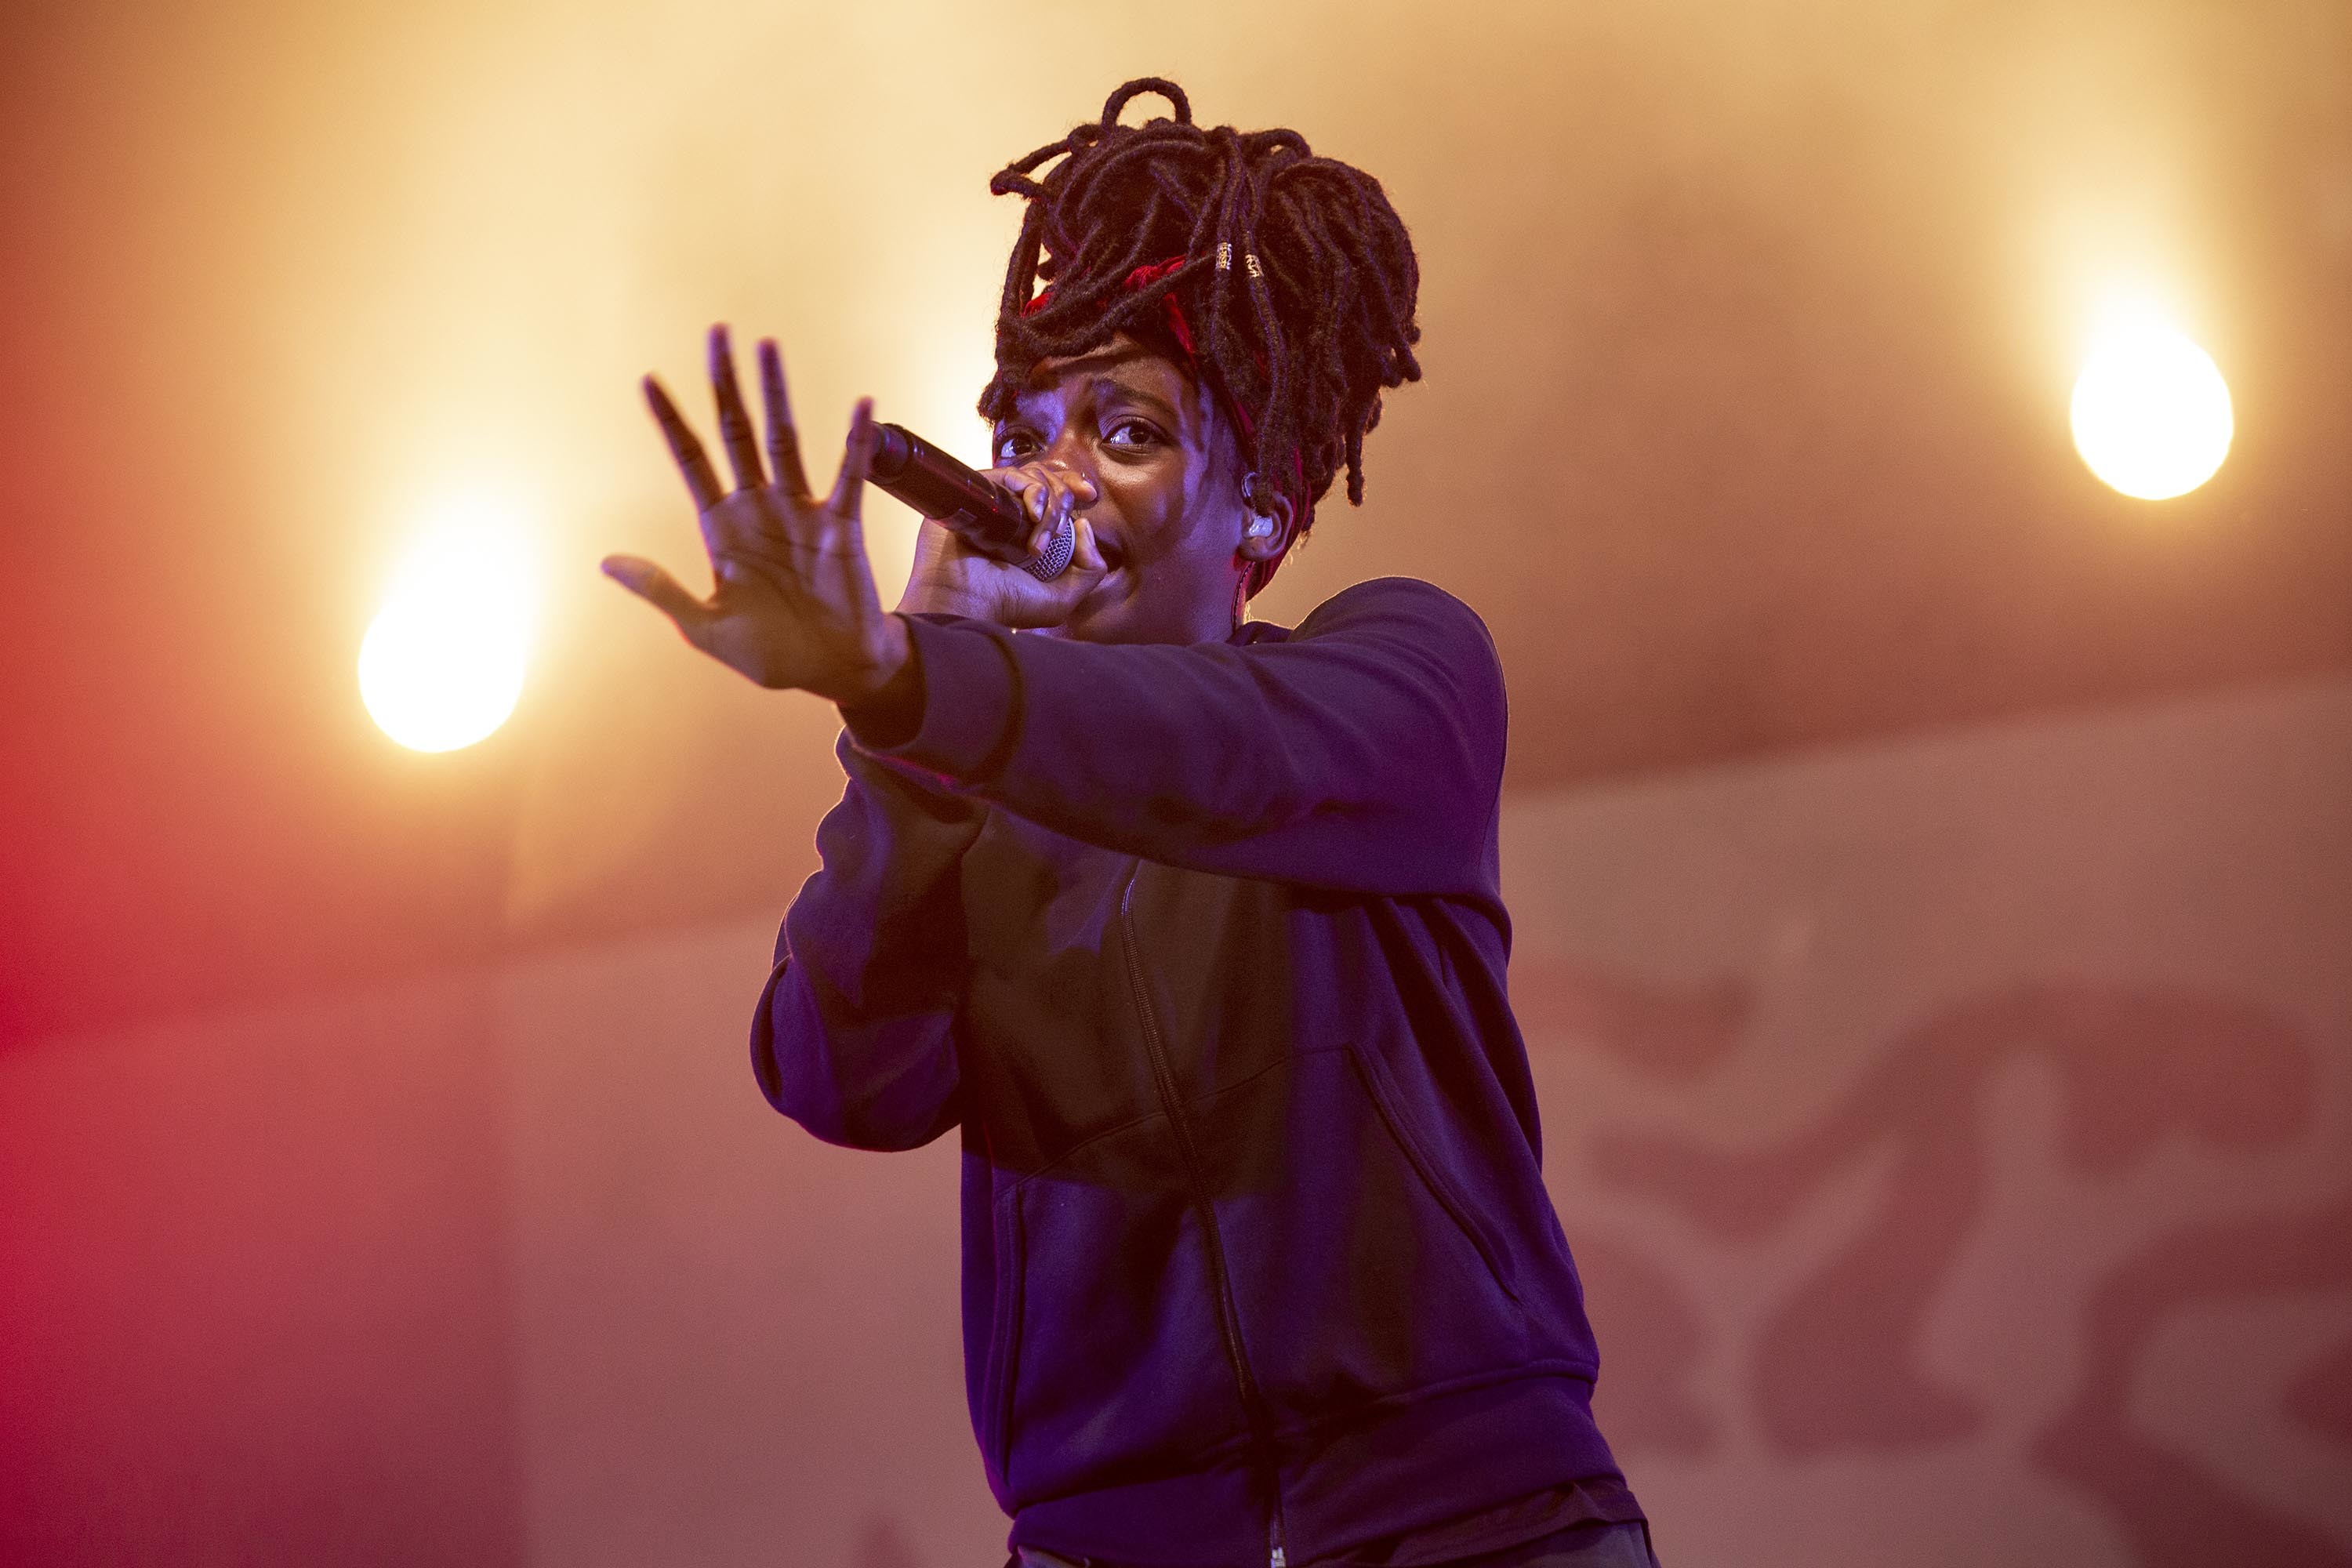 Gorillaz, Sigrid, Vince Staples and more bring high-energy sets to day three of Open'er 2018